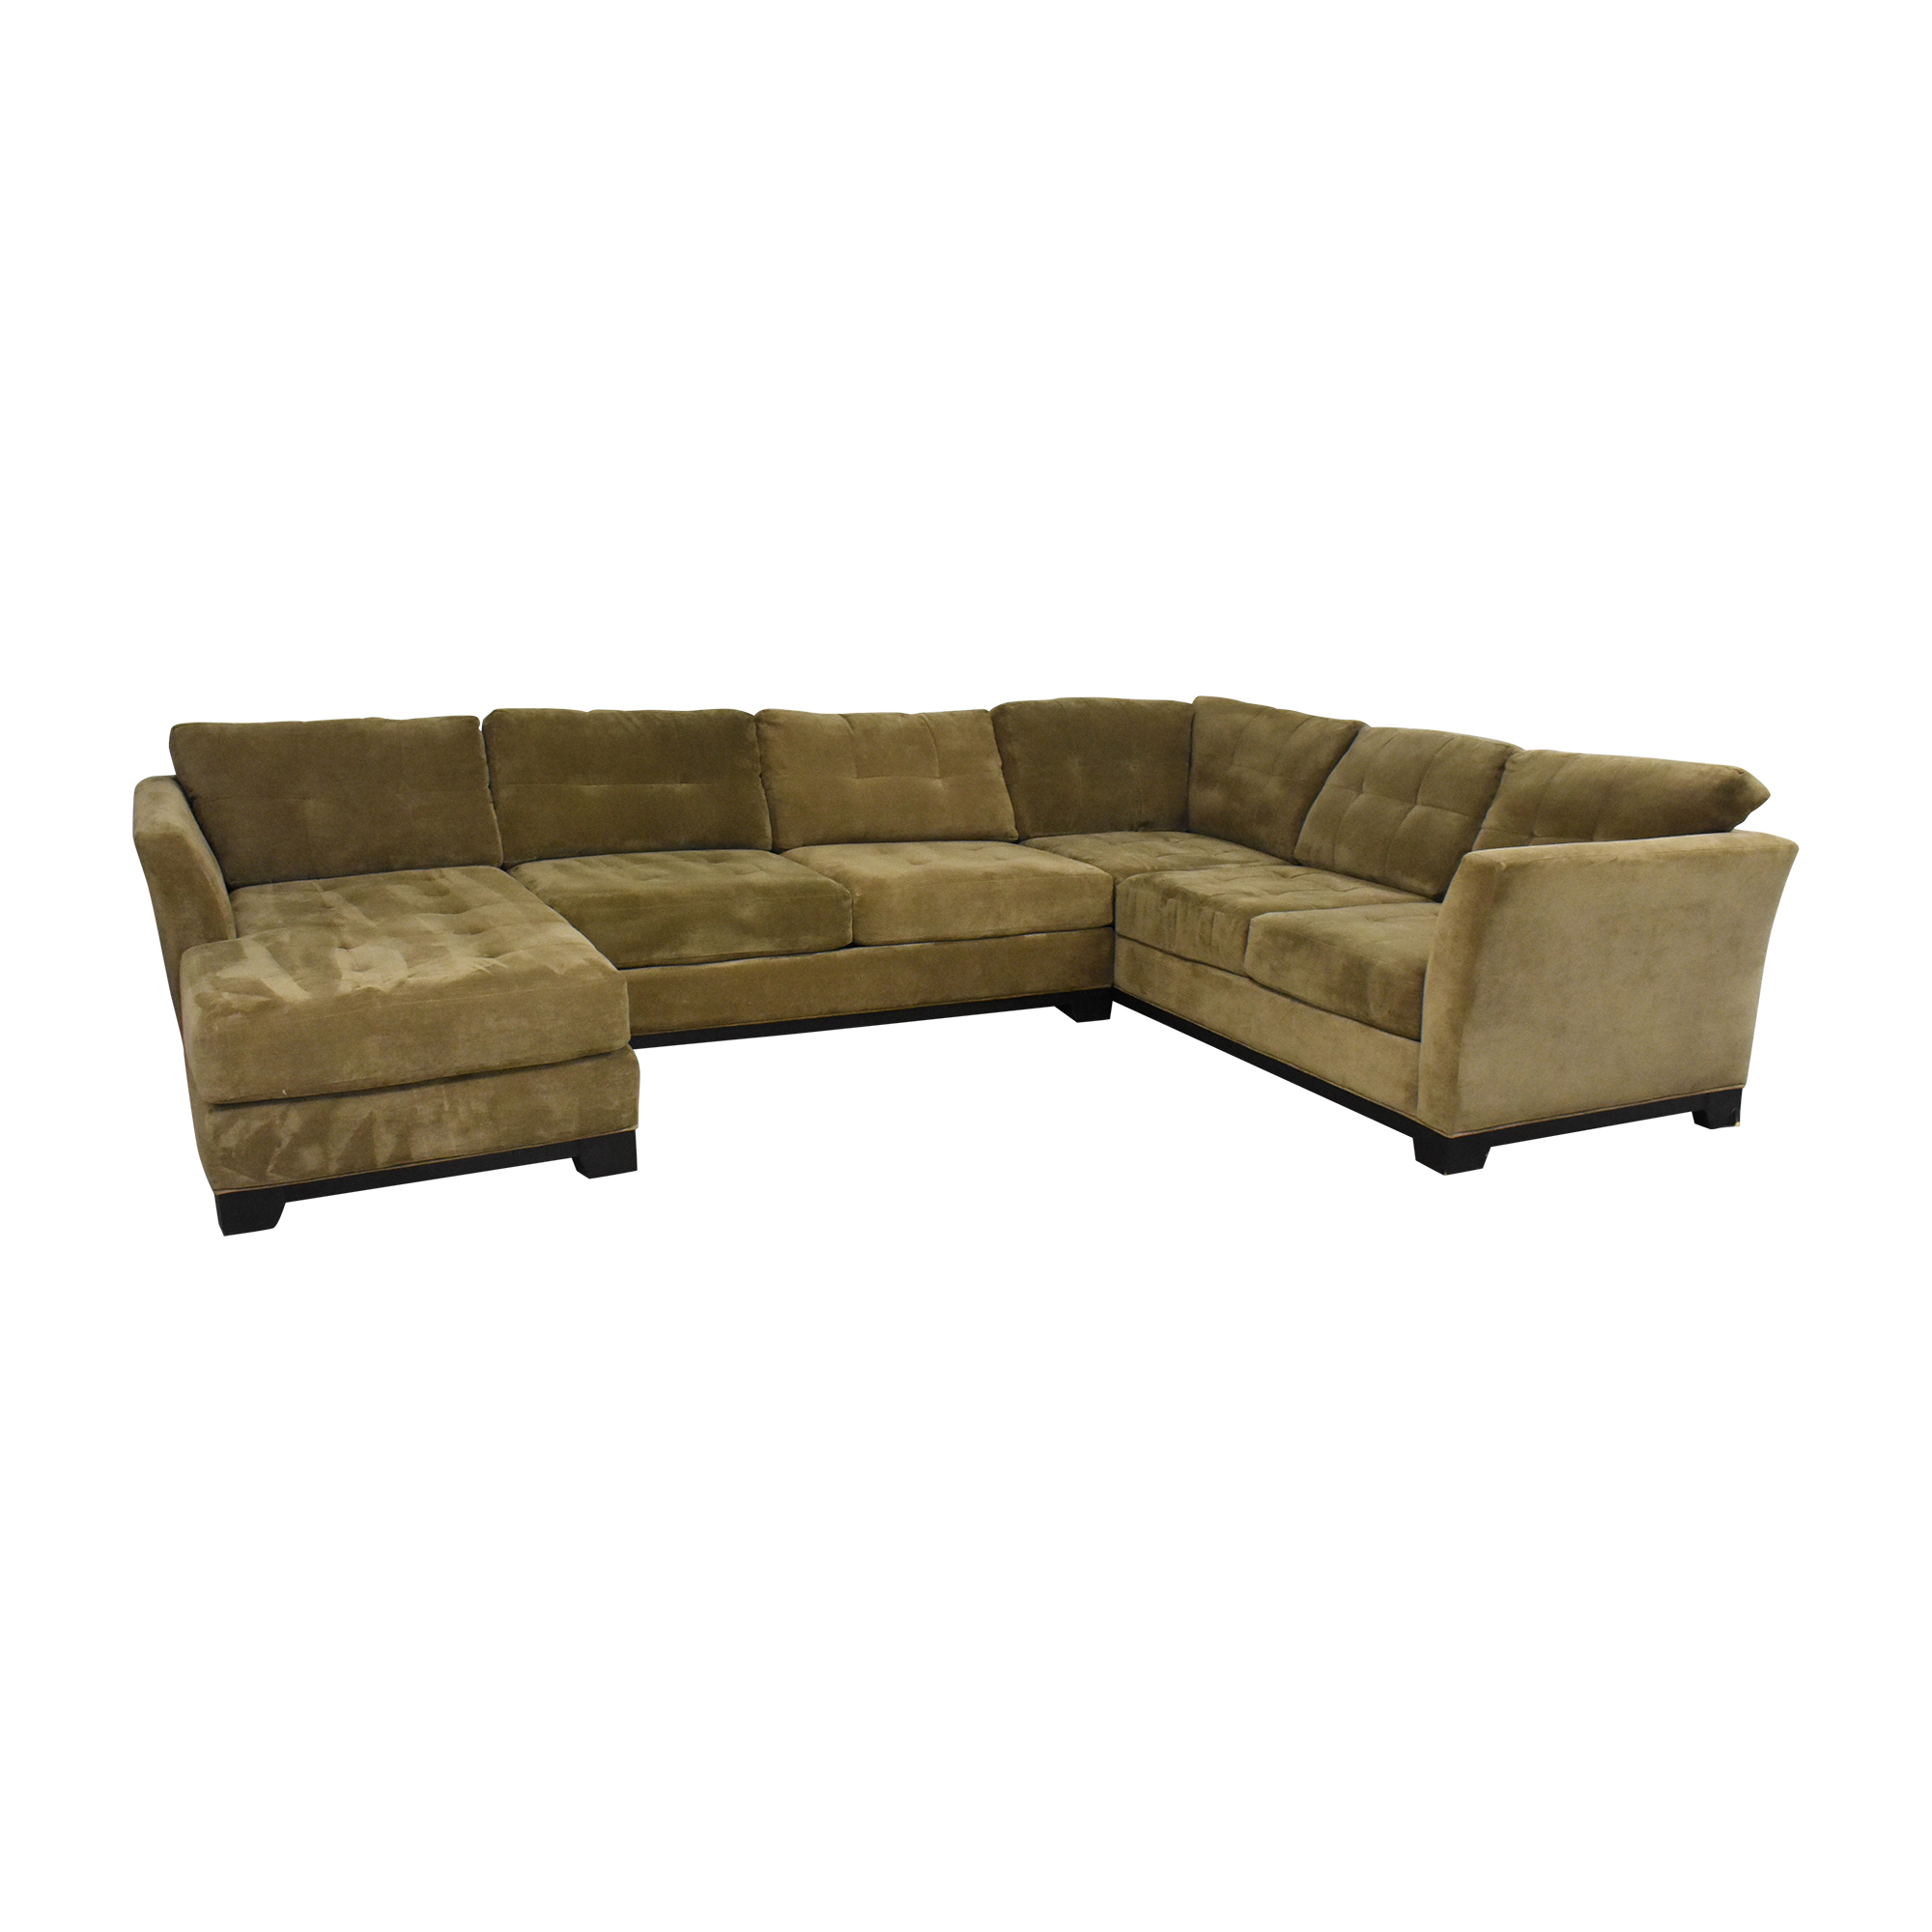 Macy's Macy's Elliot Three Piece Sectional Sofa dimensions